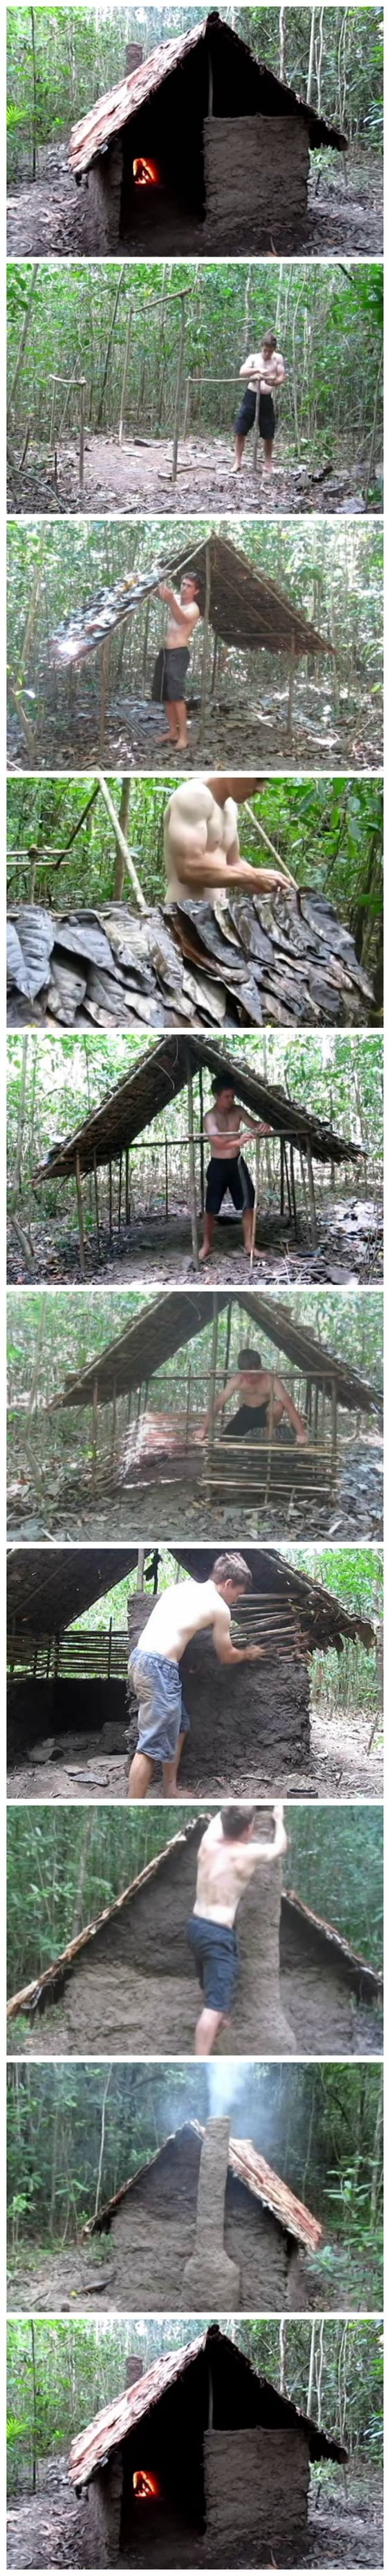 Building a Primitive Wattle and Daub Hut From Scratch: